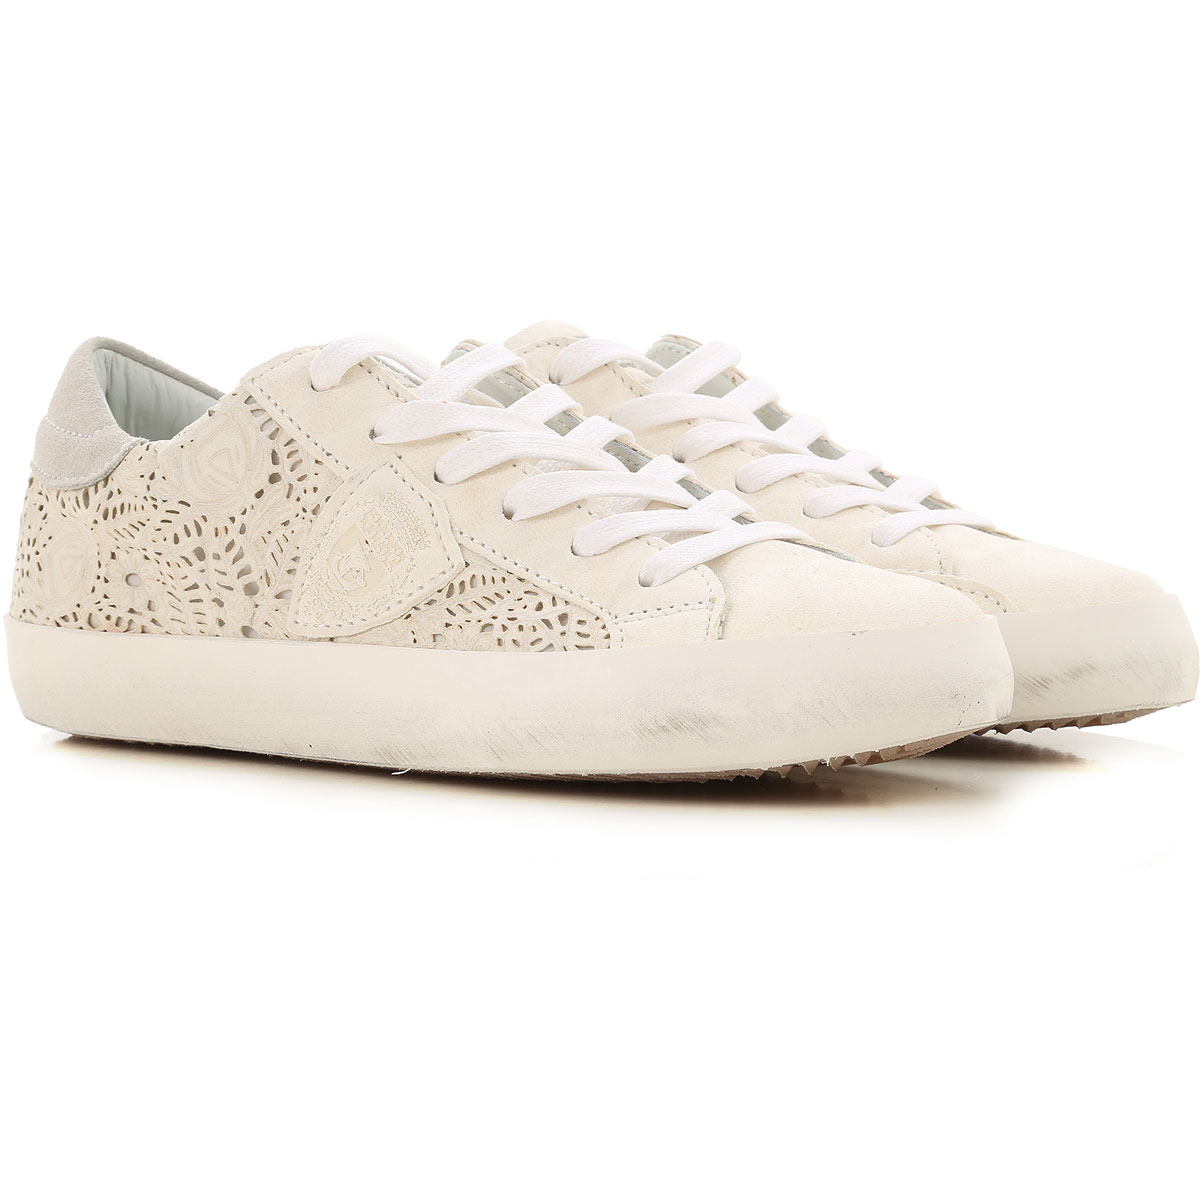 Philippe Model Kids Shoes for Girls On Sale in Outlet, Cream, Leather, 2019, 29 30 31 32 33 35